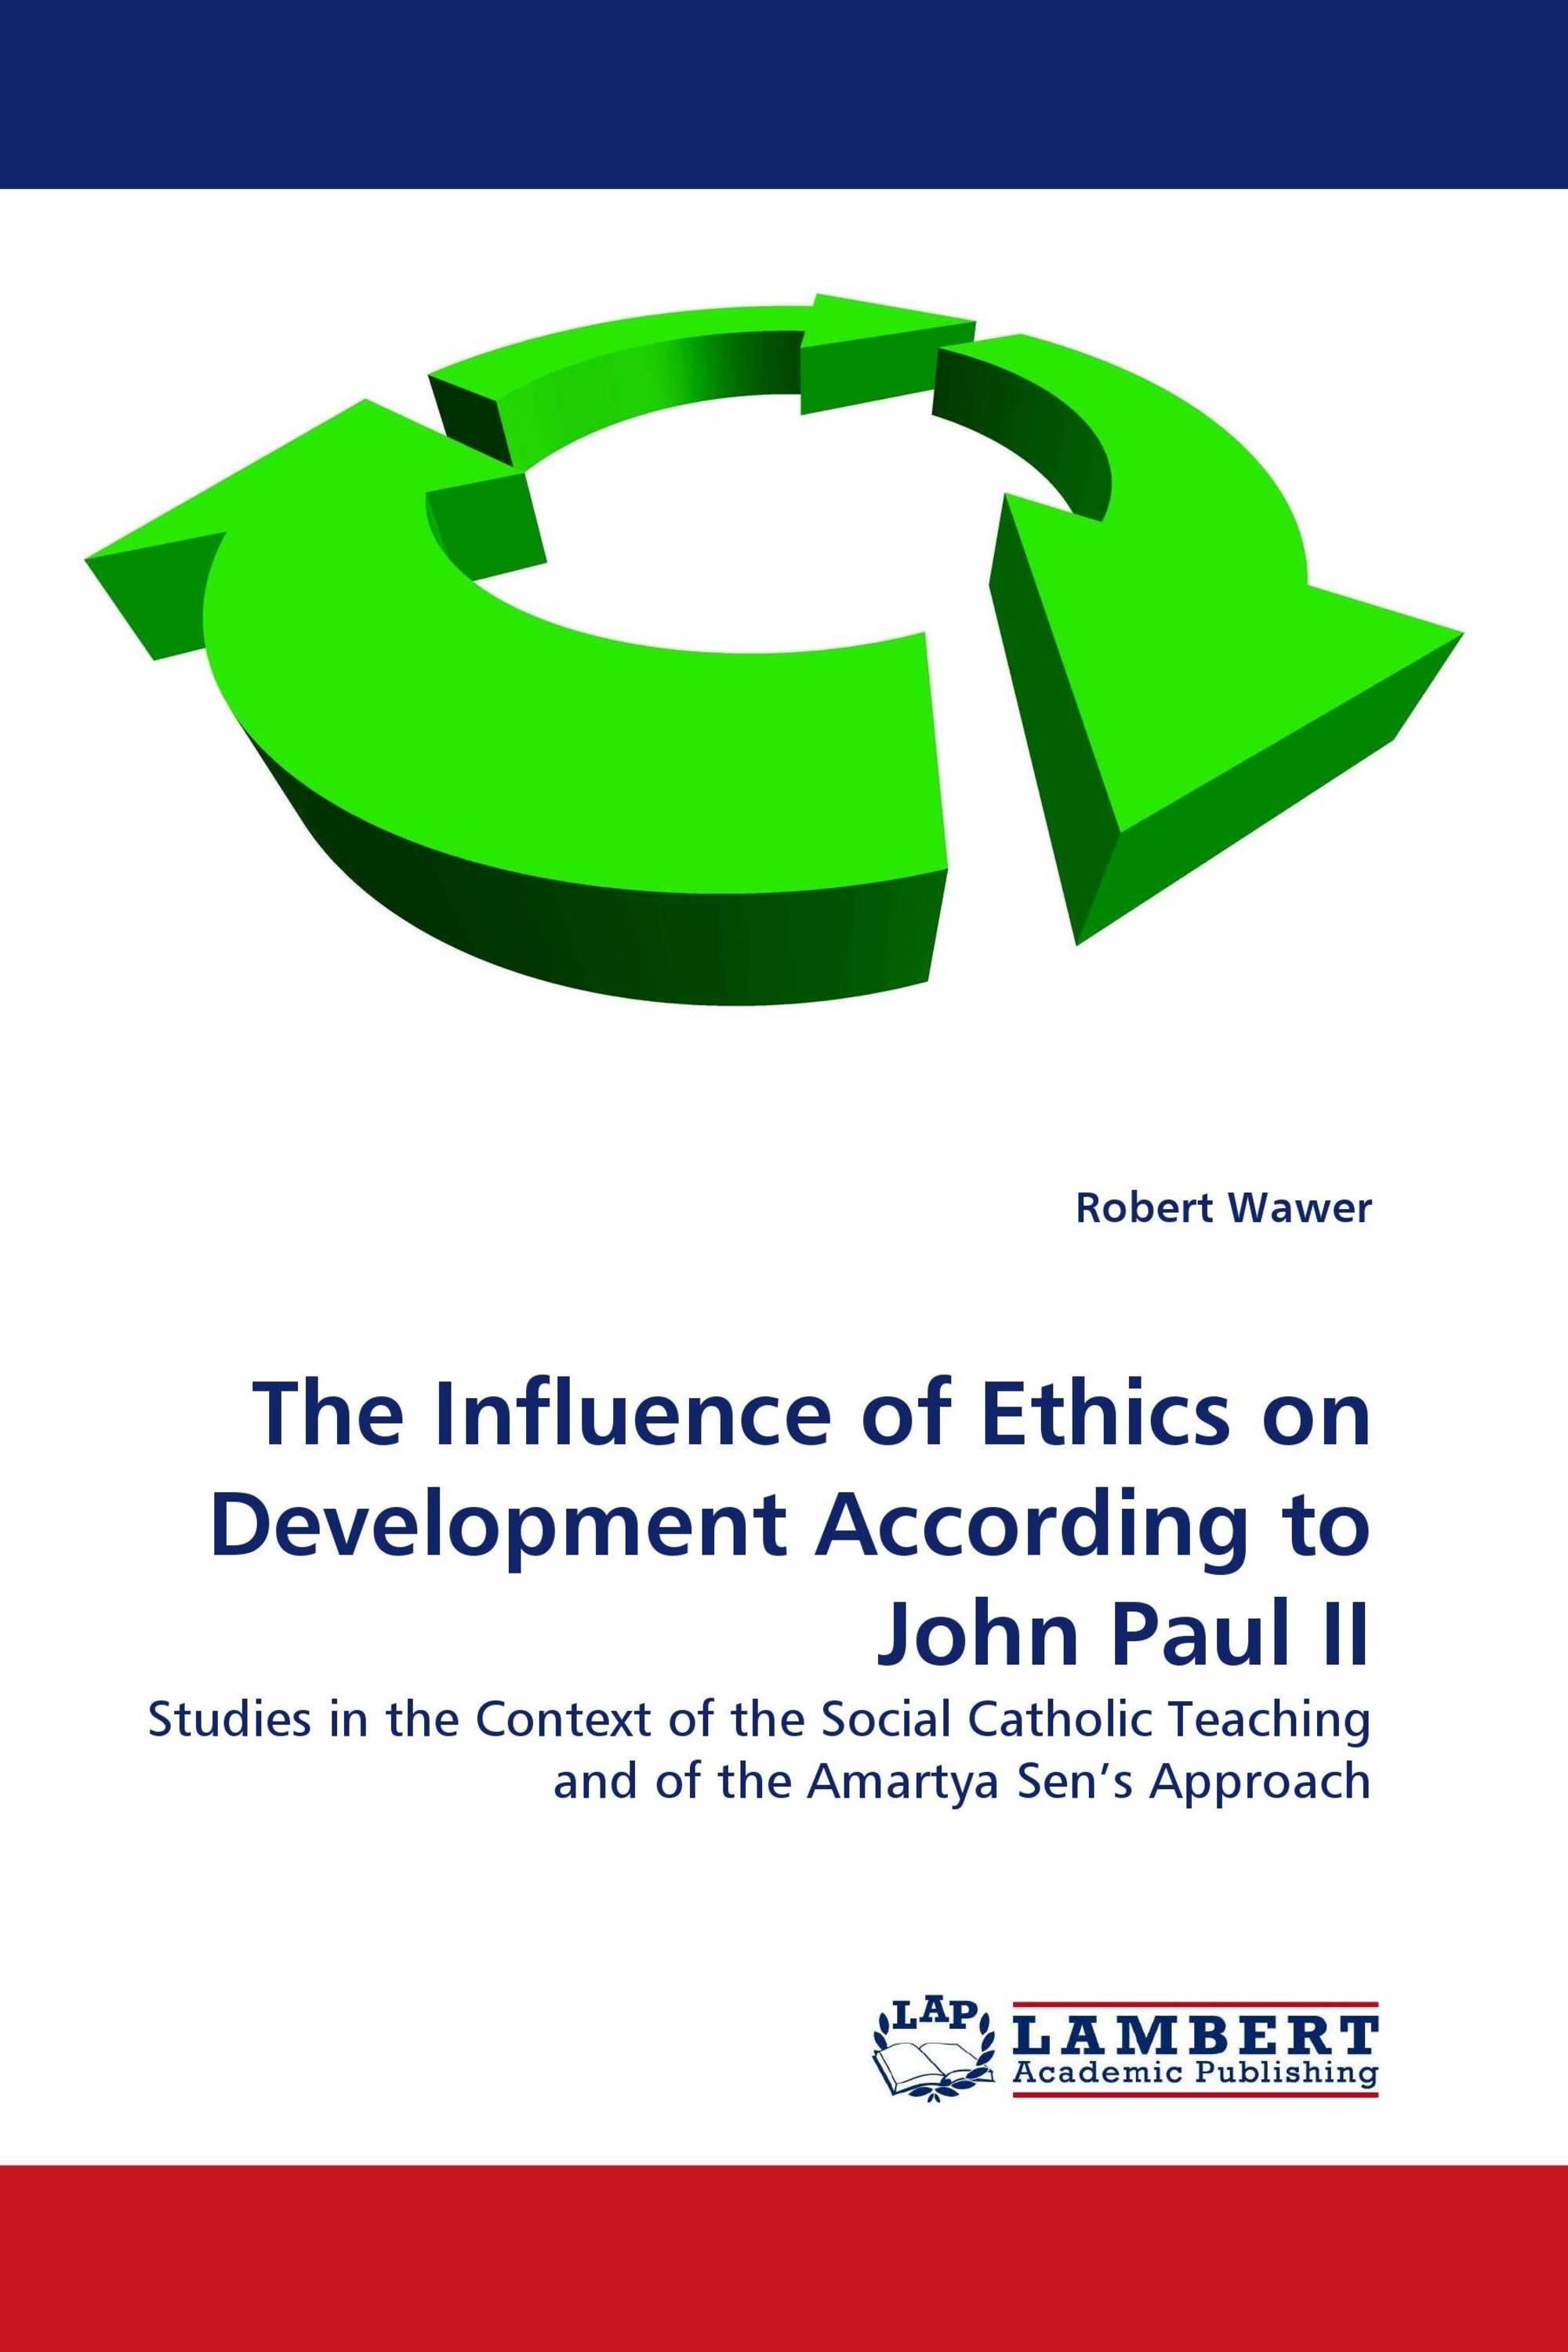 The Influence of Ethics on Development According to John Paul II